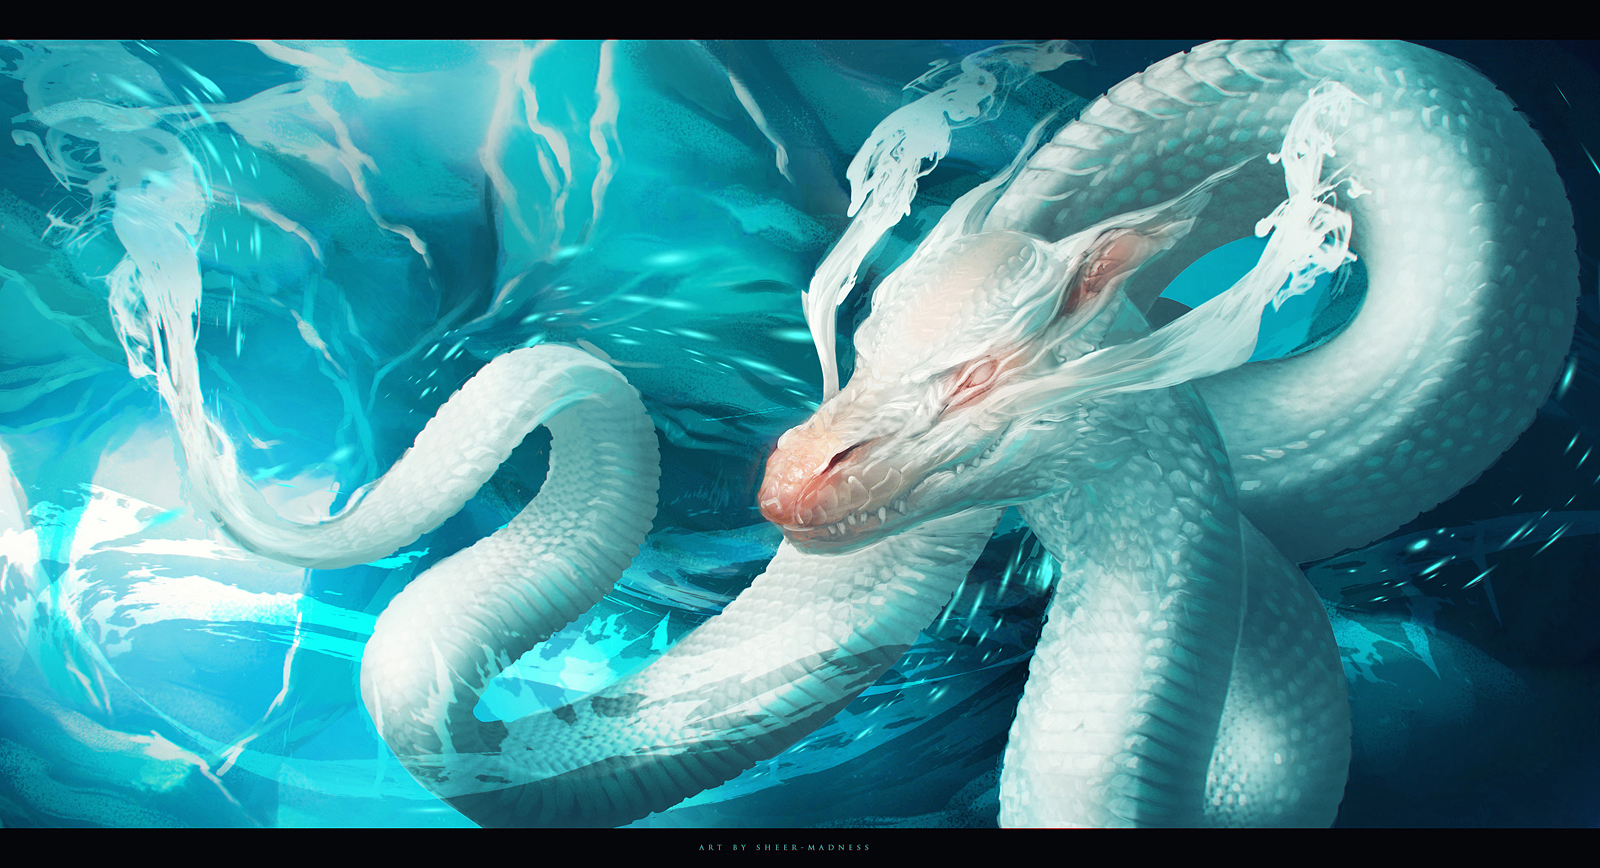 water dragon by sheer-madness on DeviantArt